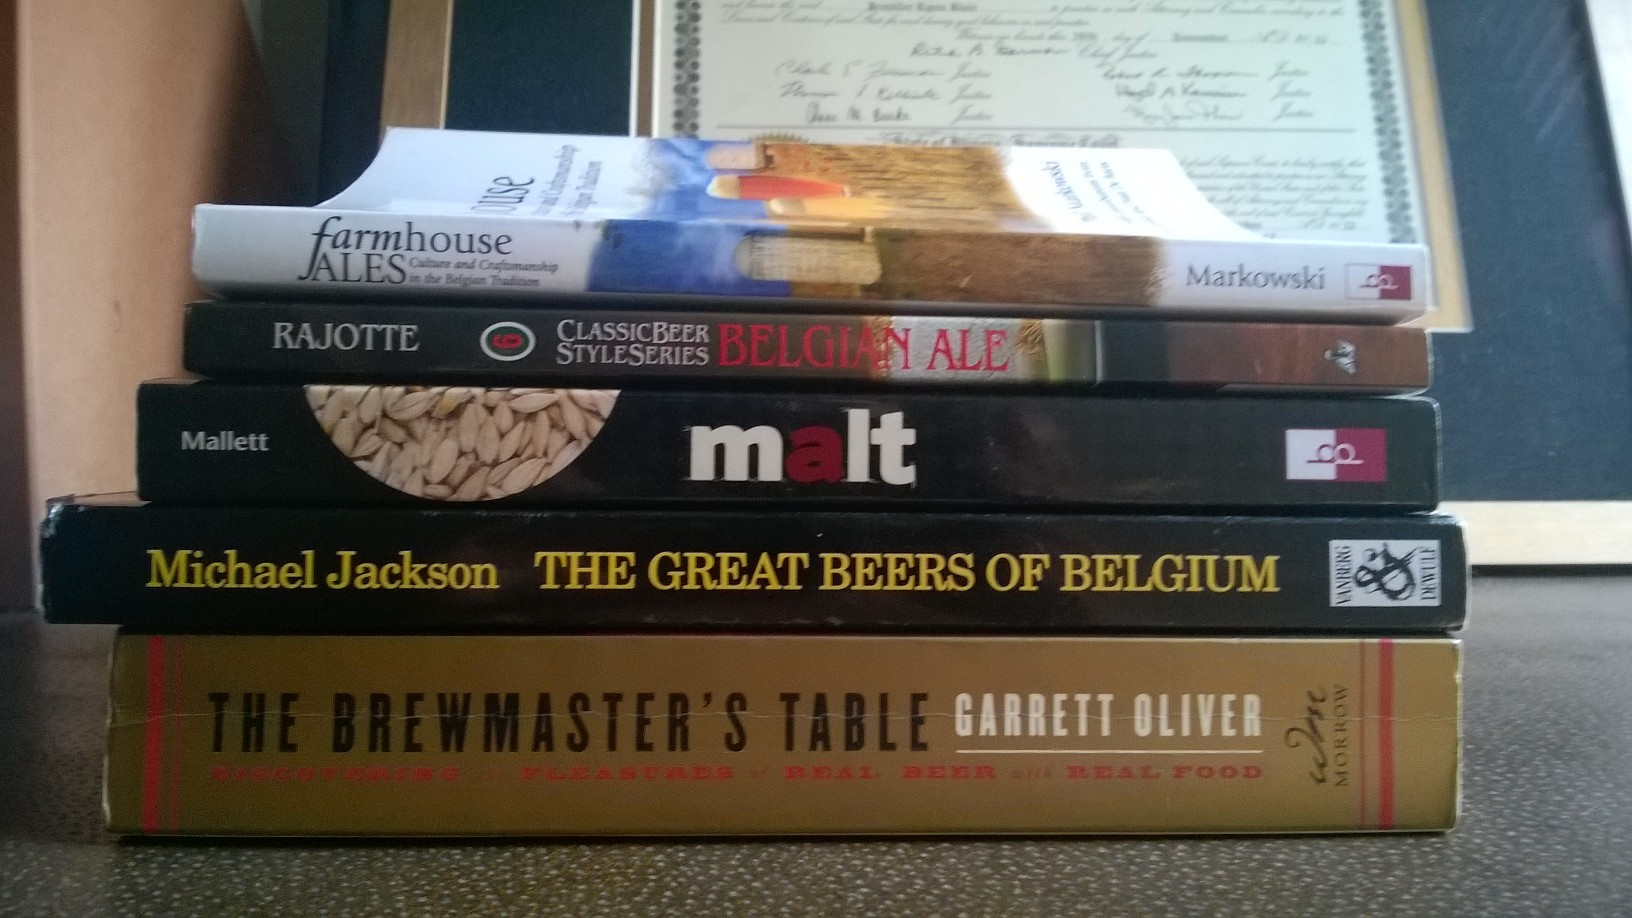 The two other books I read that are not pictured are  Lambic  and  Brew Like a Monk , which I read on my tablet.